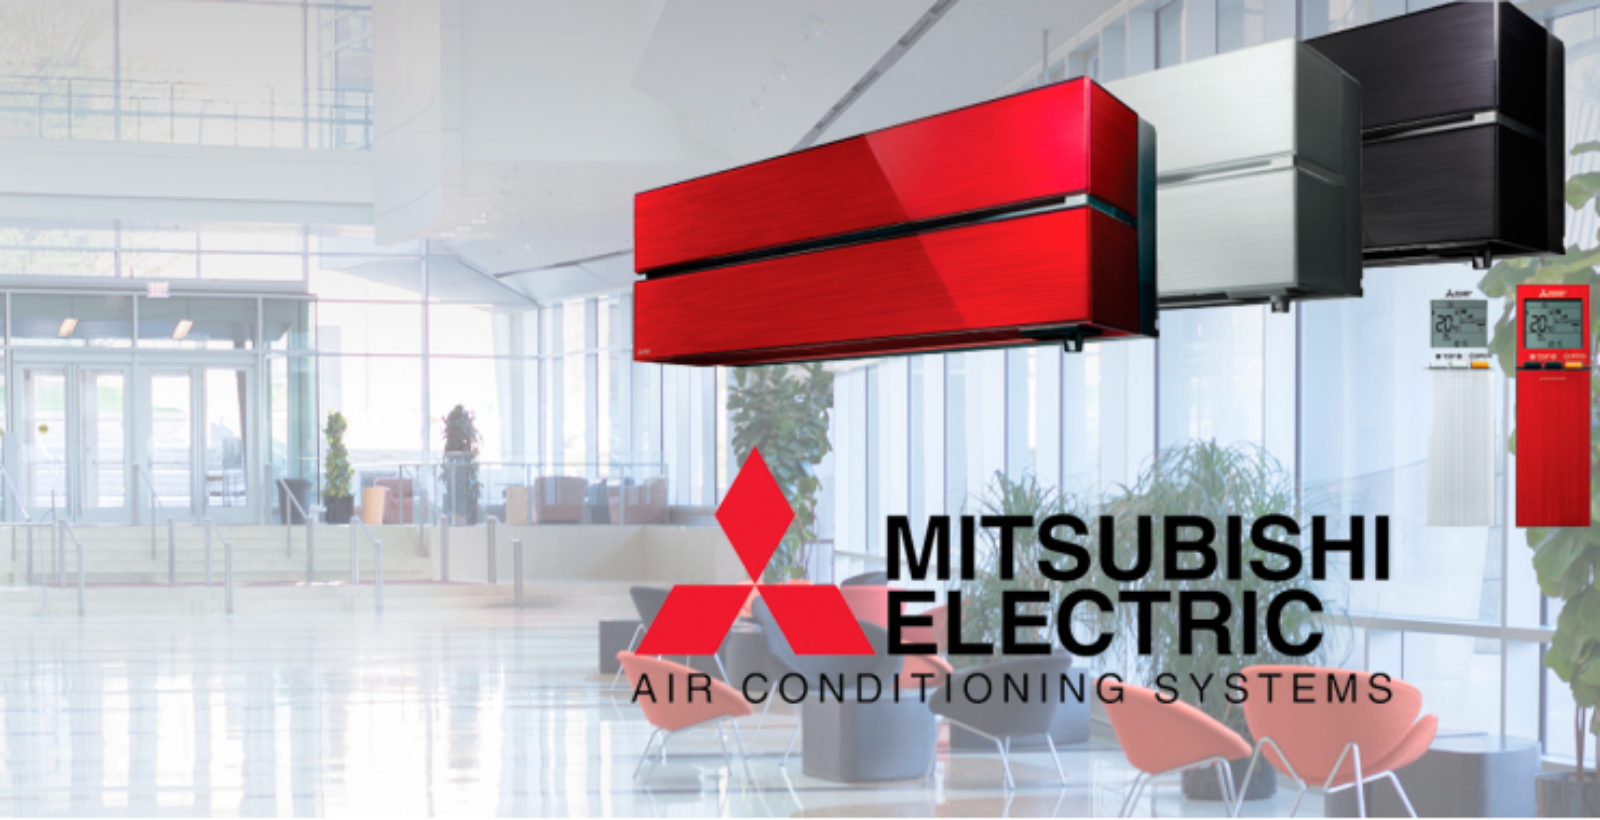 Mitsubishi_air_conditioning_Baner-1920x700_0-1140×380